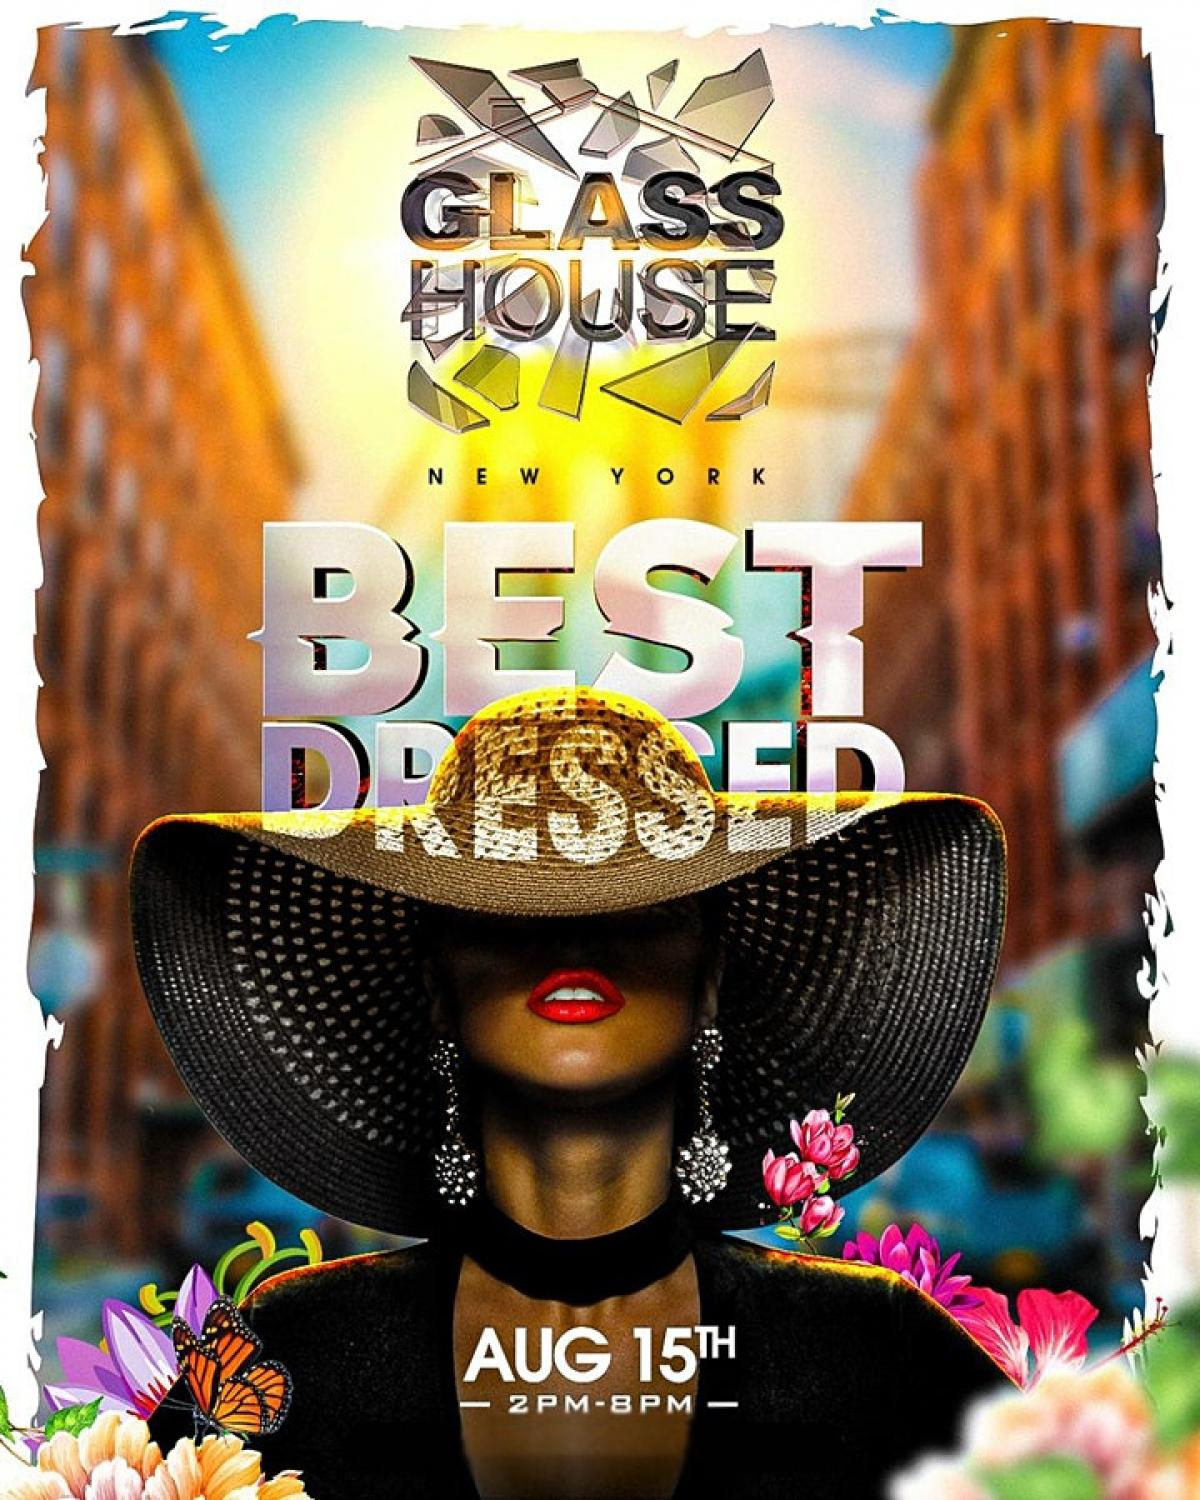 Glasshouse NYC flyer or graphic.